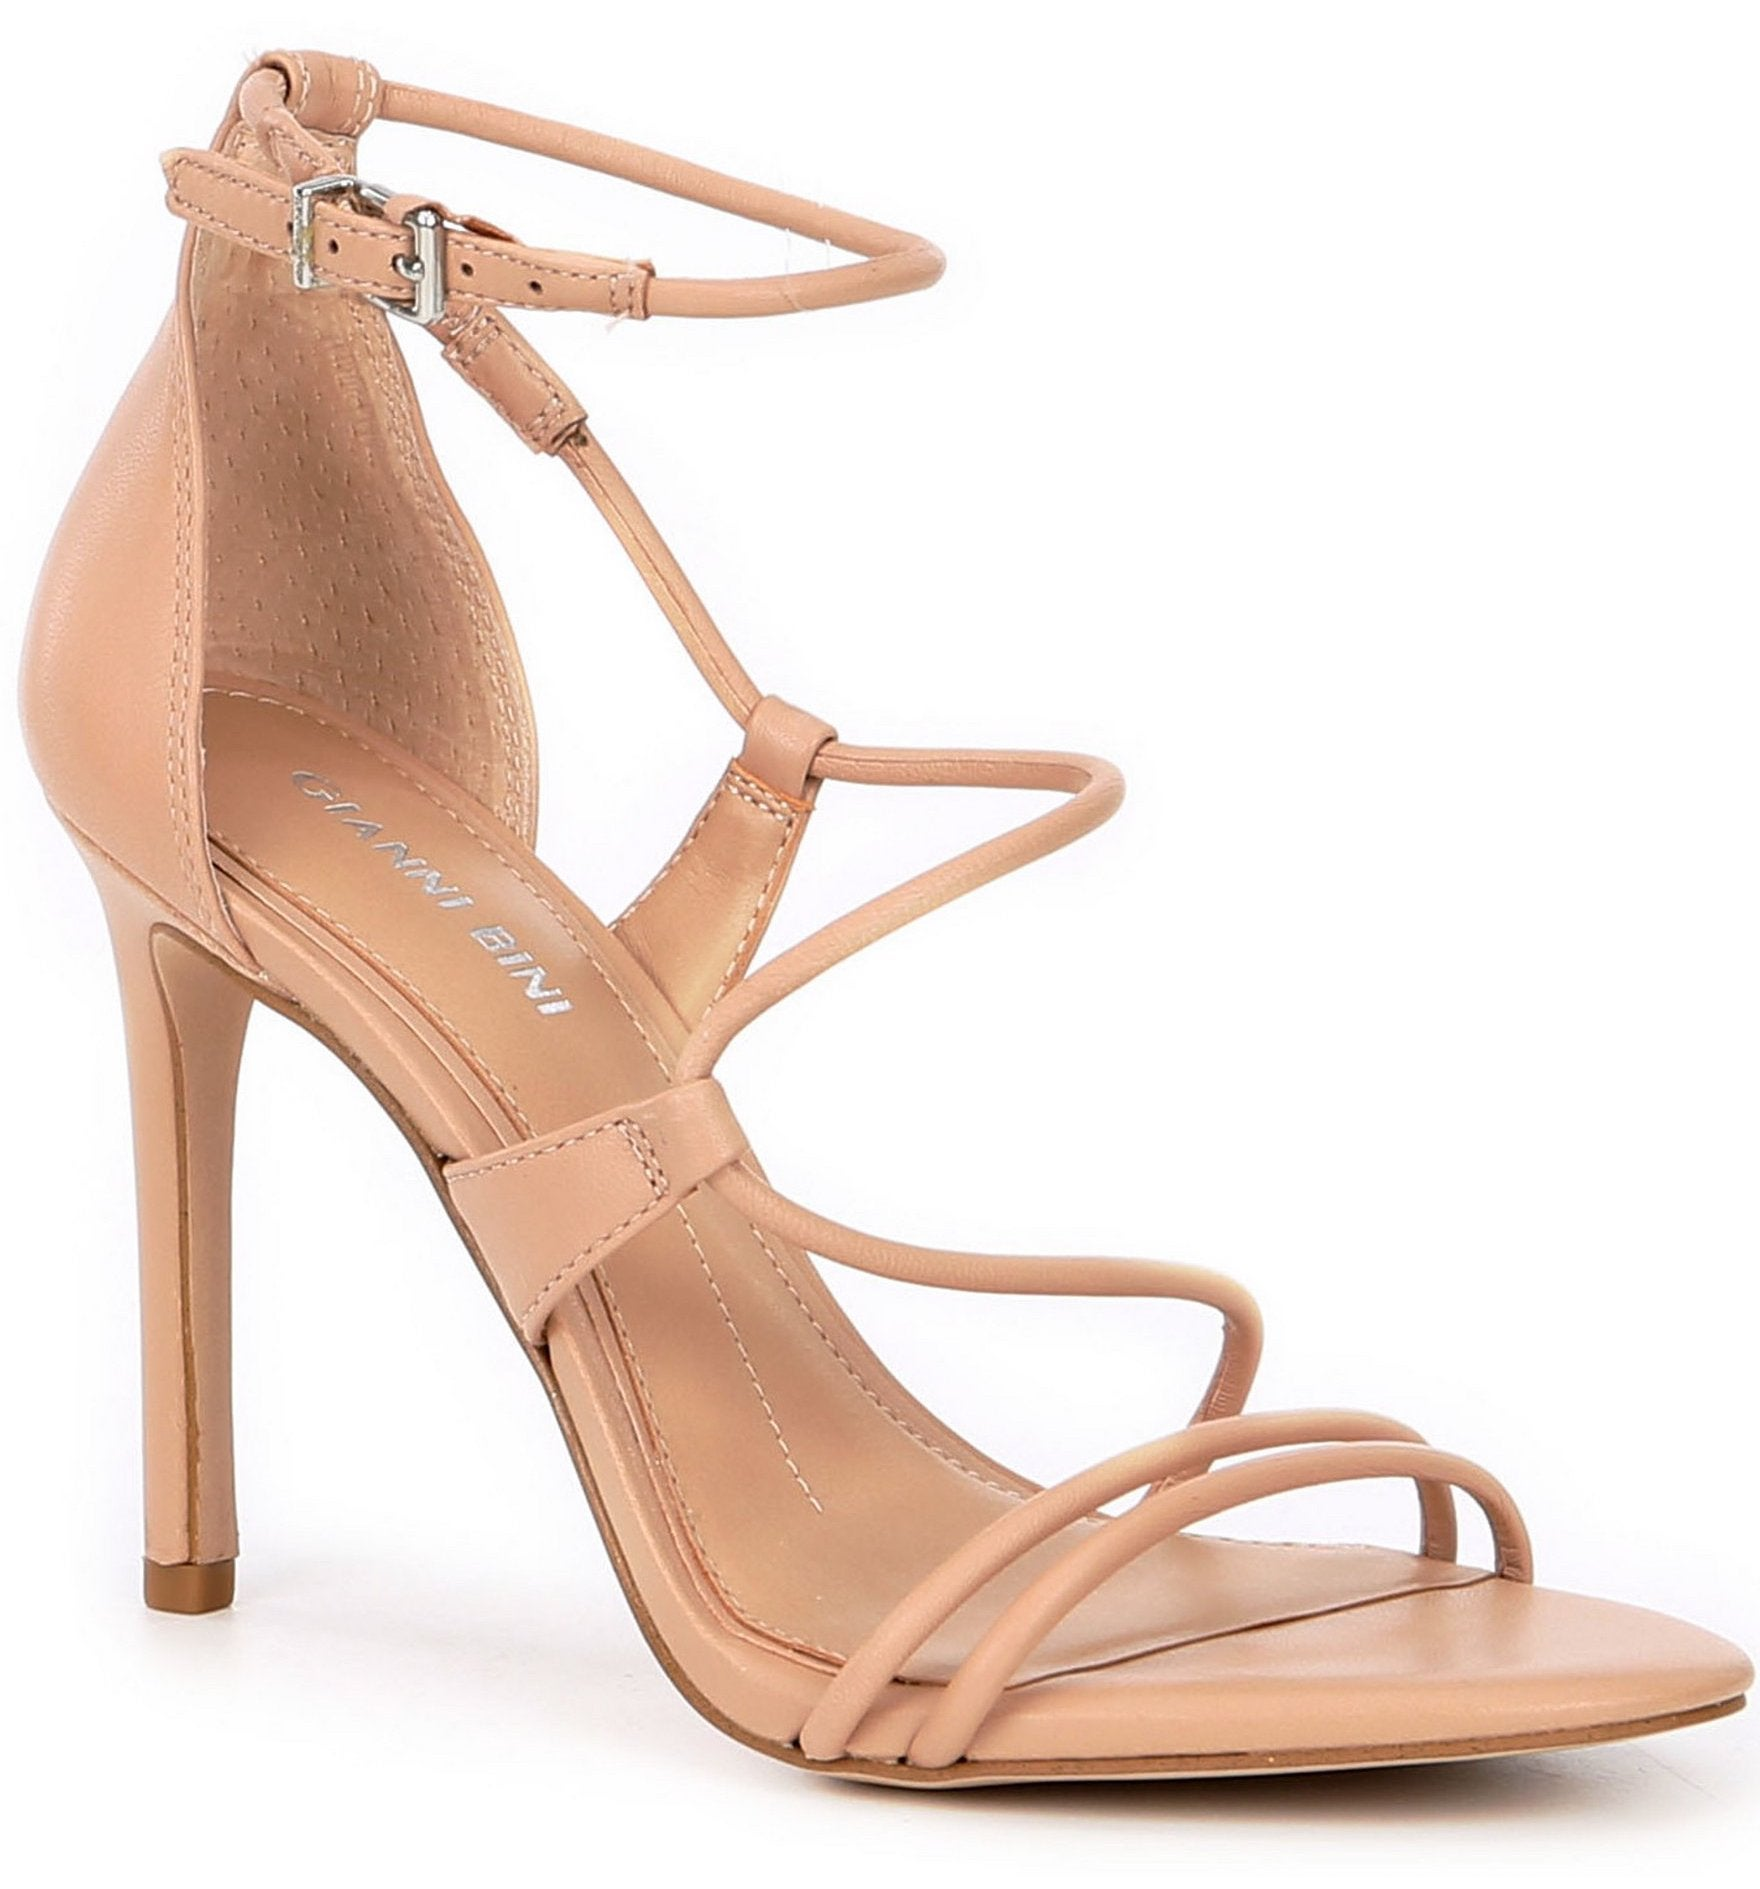 Gianni Bini Kameela Leather Strappy Dress Sandals